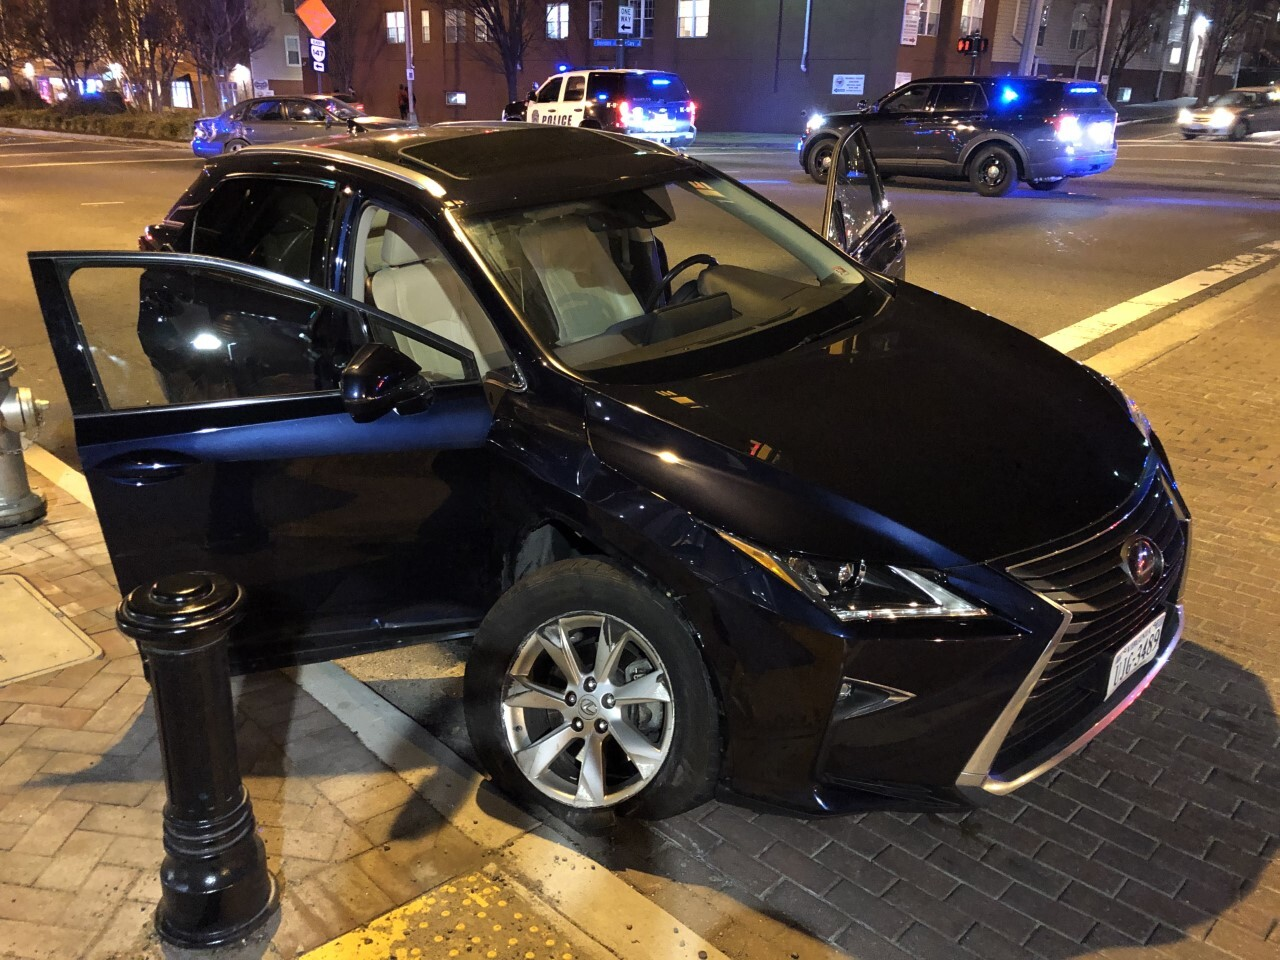 Suspect's Car on South Belvidere Street